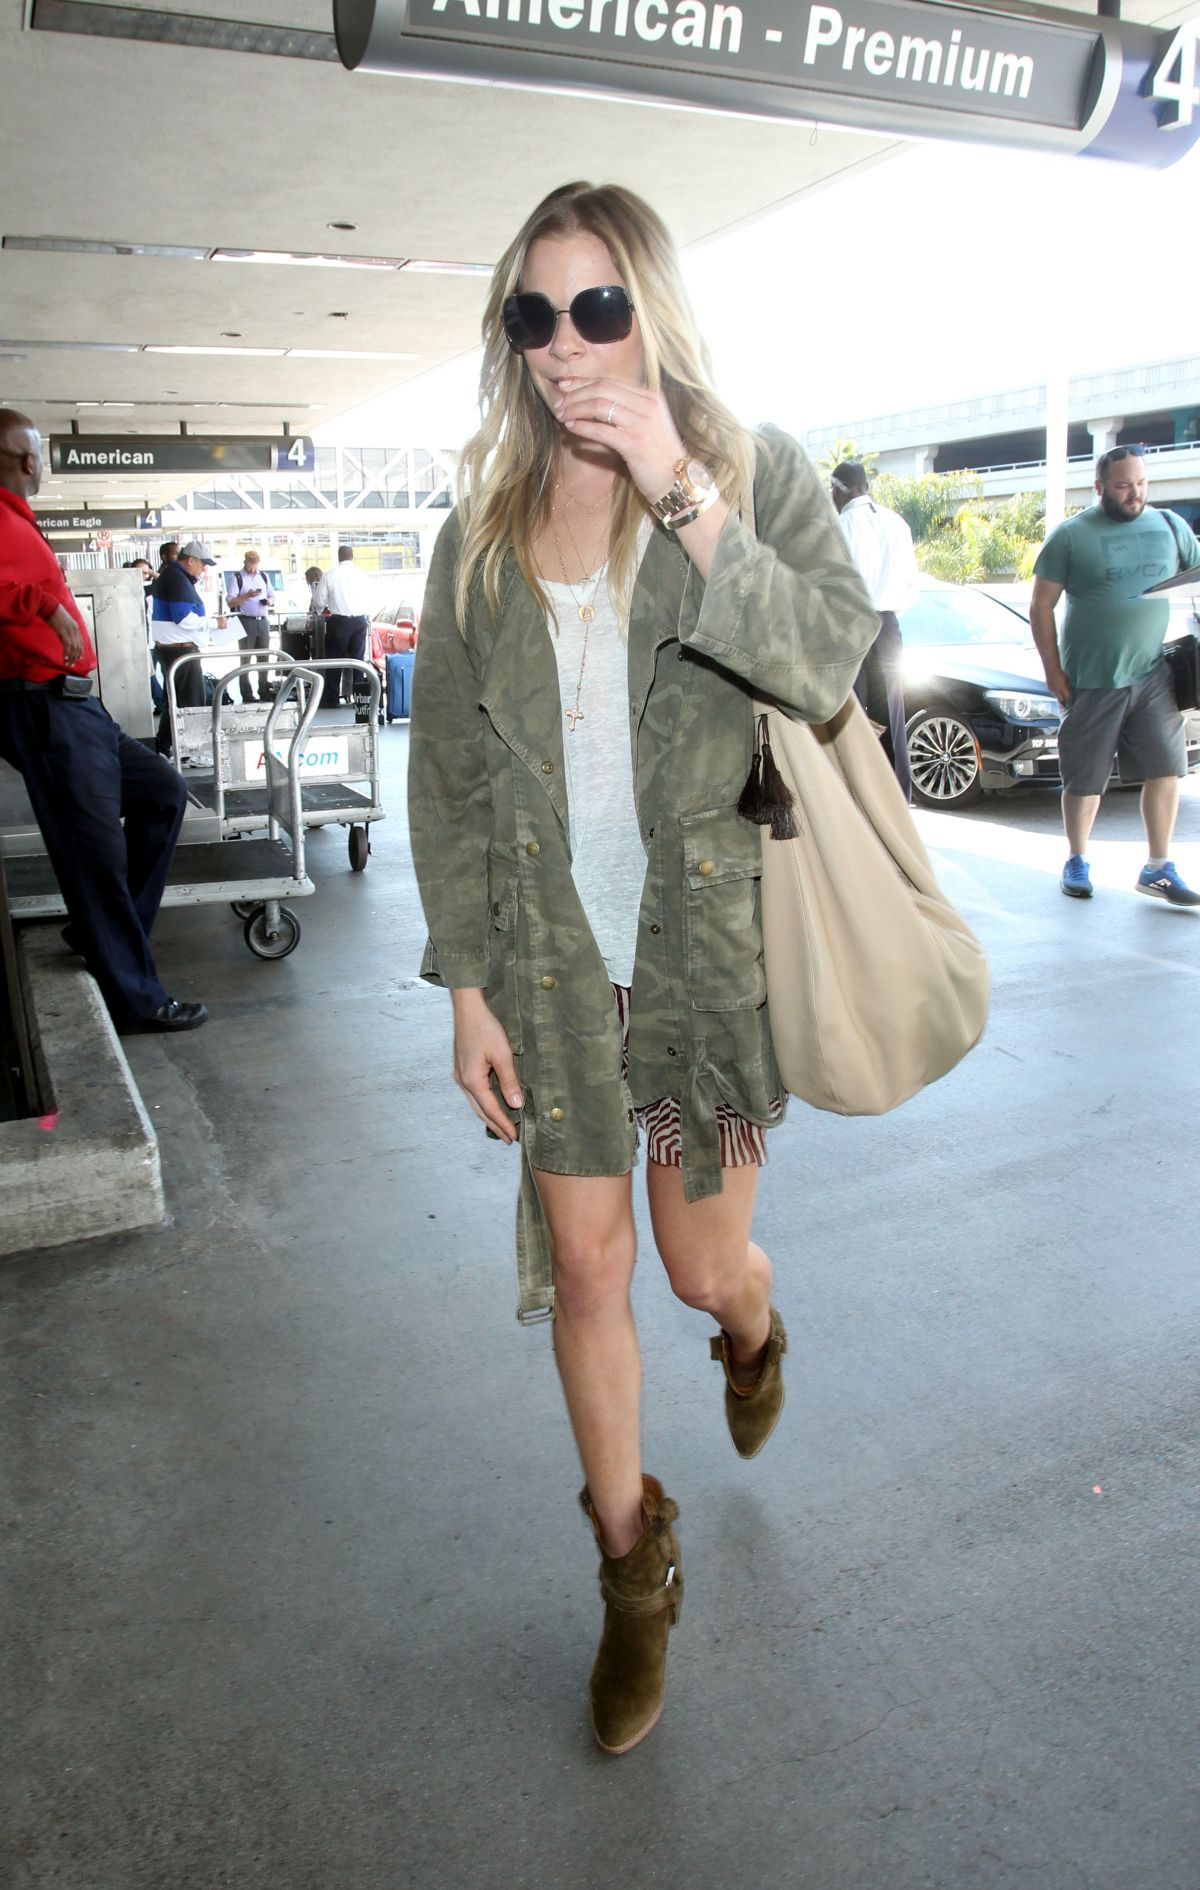 LEANN RIMES at LAX Airport in Los Angeles 05/22/2015